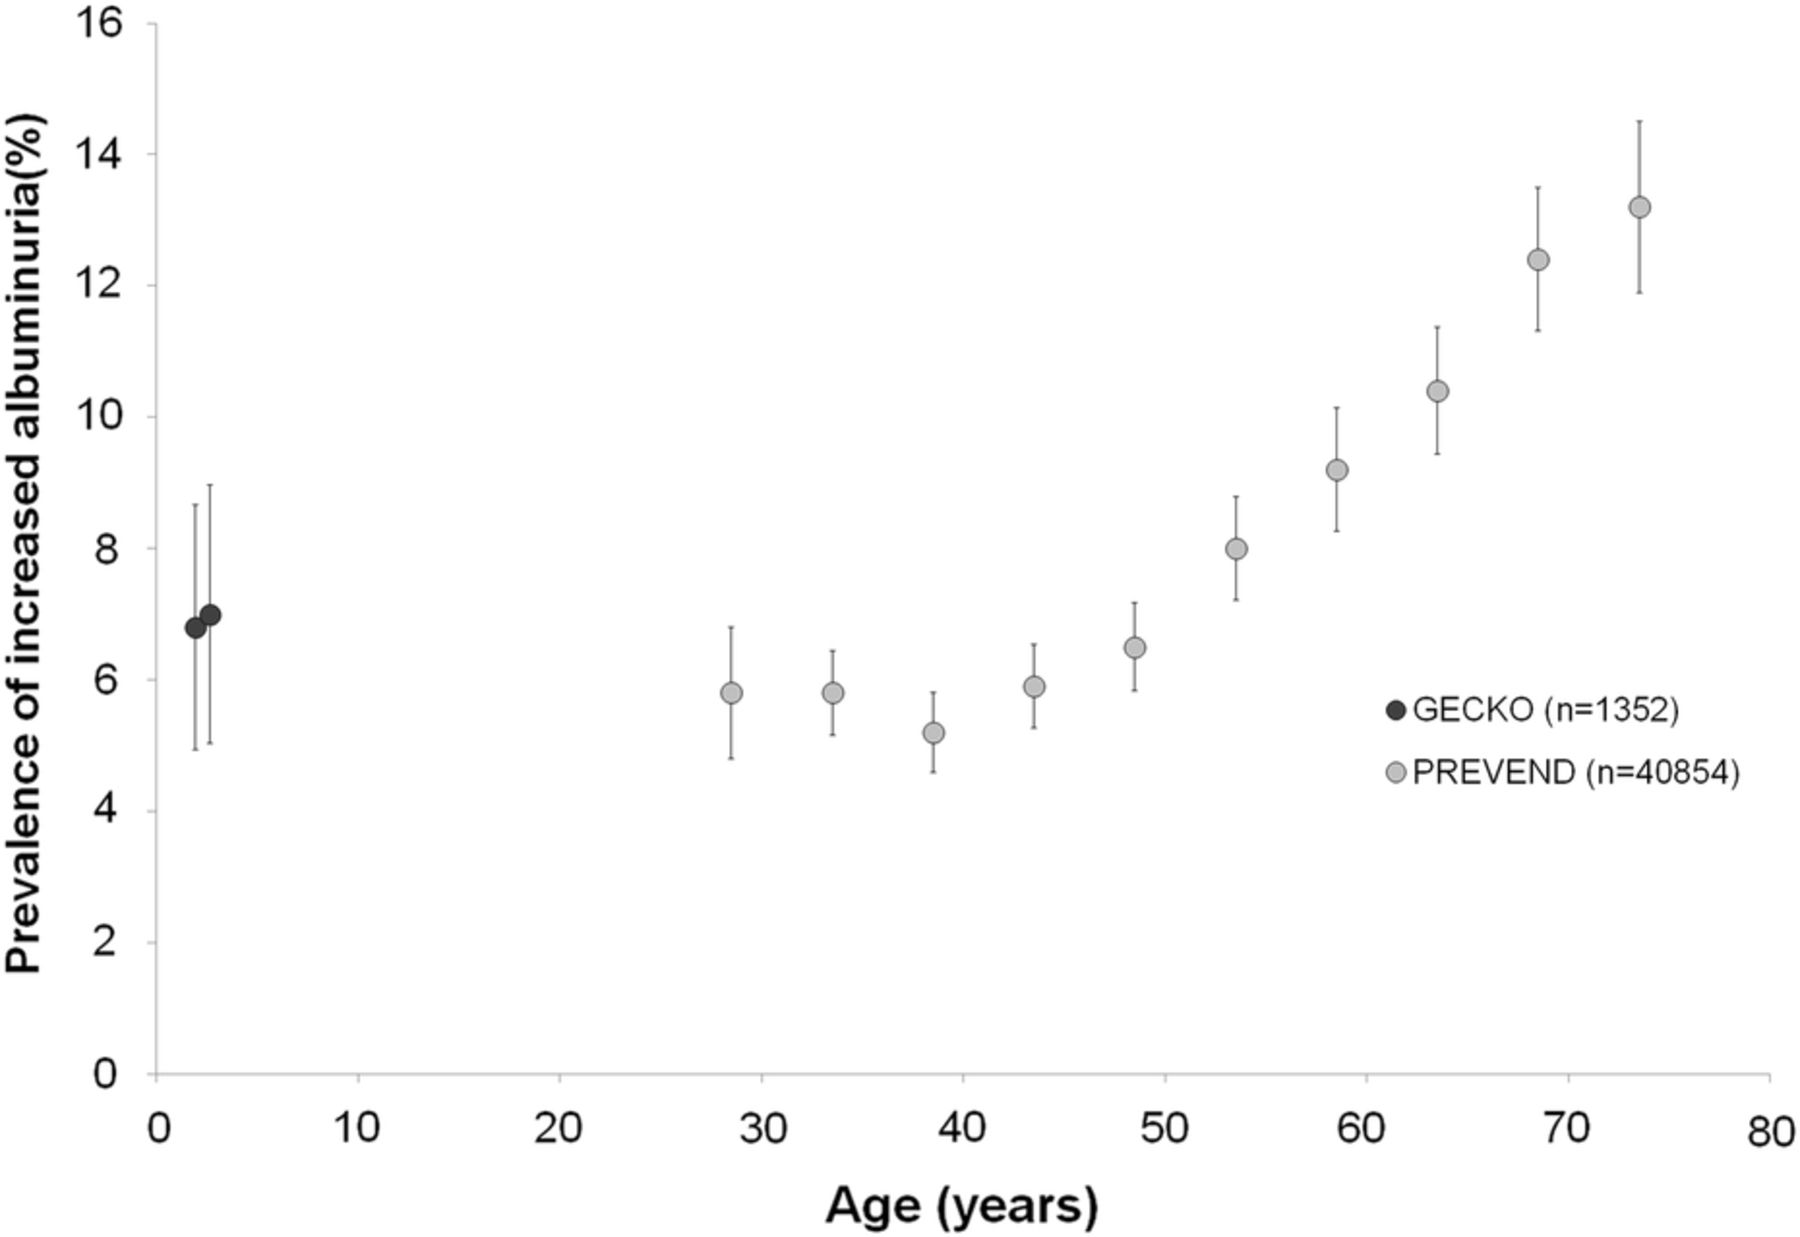 FIGURE 4 from Gracchi et al:  Prevalence of increased albuminuria (UAC ≥ 20 mg/L) in different age ranges in the general population of the Dutch northern provinces (data from the GECKO and PREVEND cohorts).